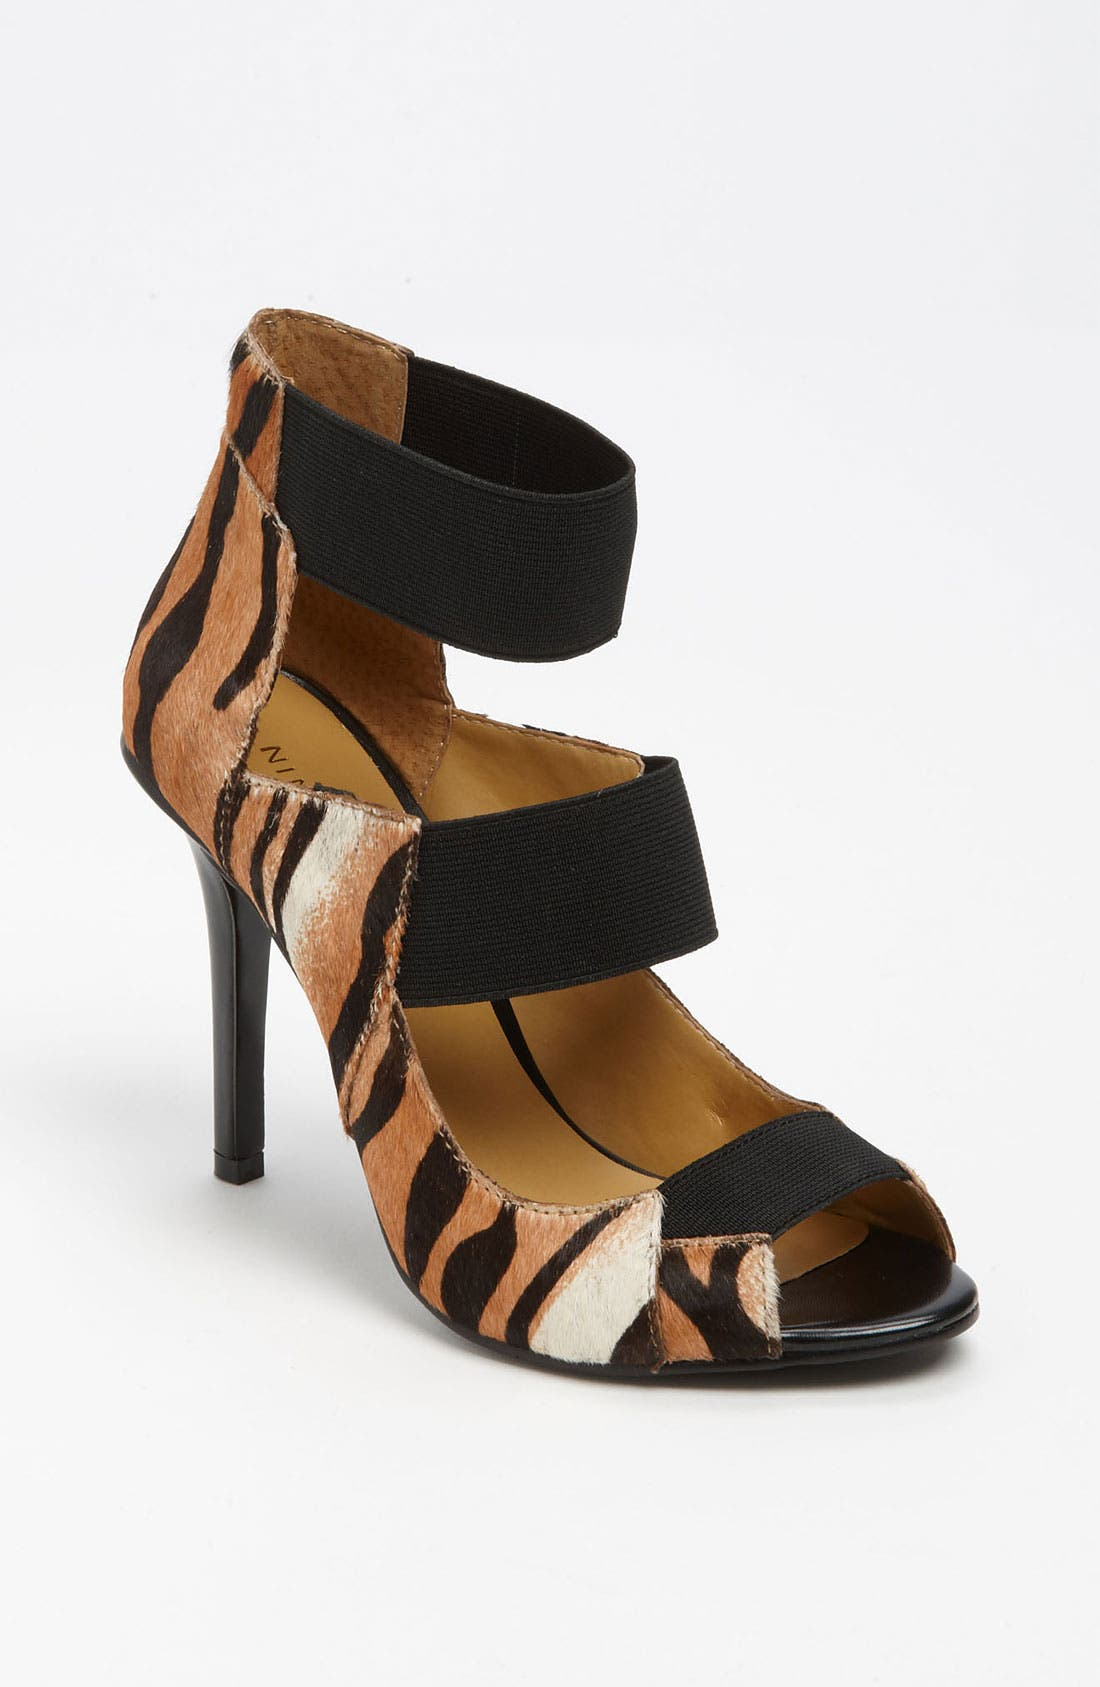 Alternate Image 1 Selected - Nine West 'Stormchasr' Pump (Online Exclusive)